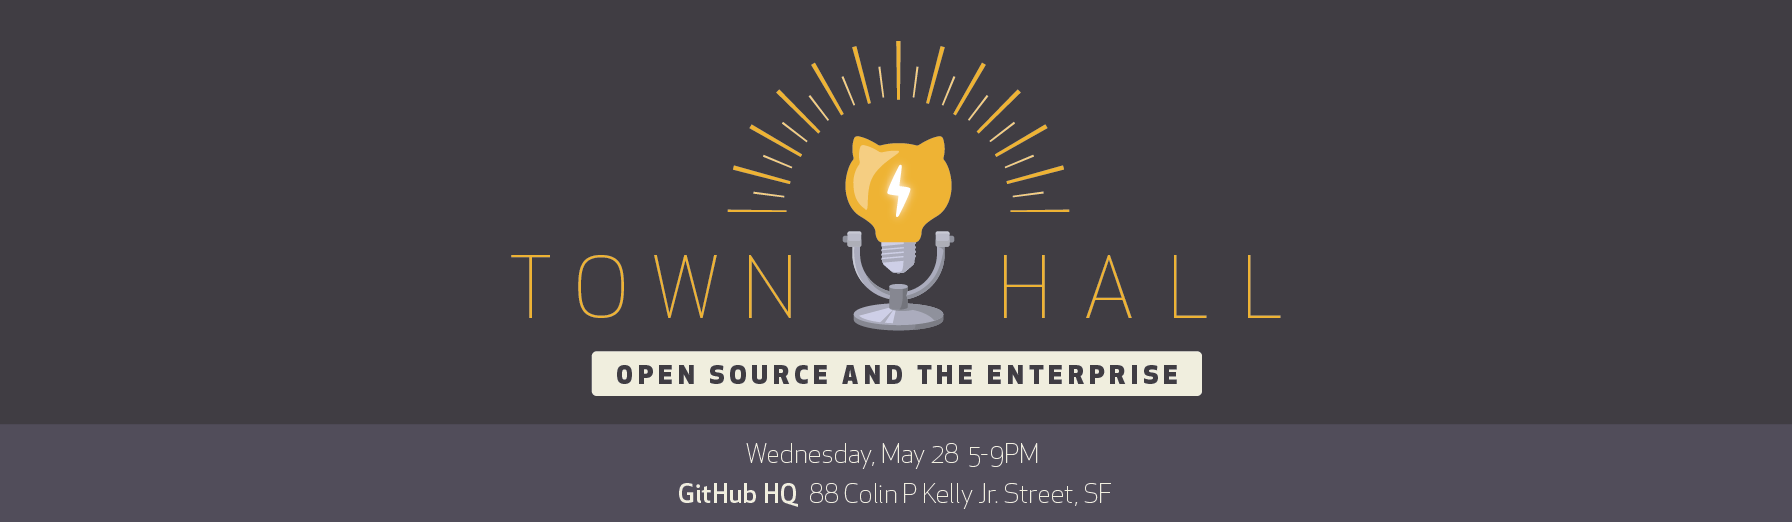 GitHub Town Hall: Open Source and the Enterprise